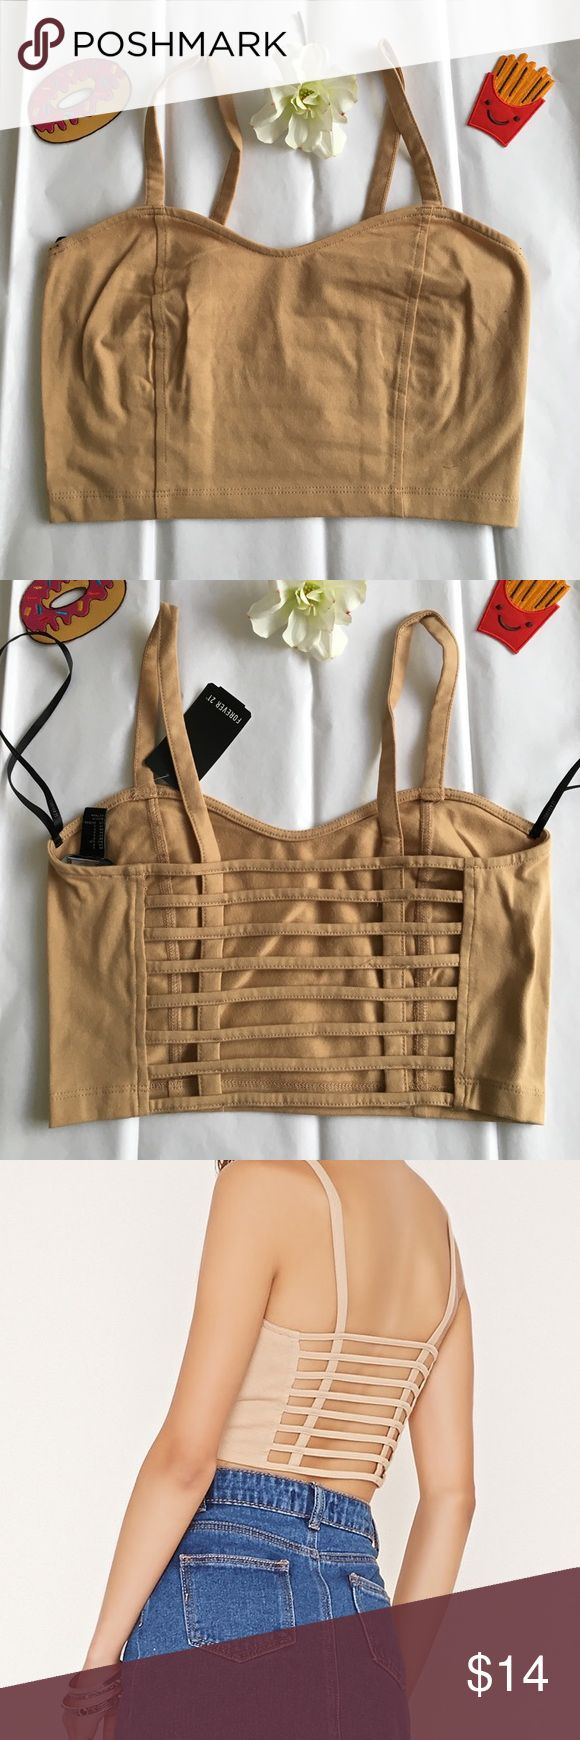 NWT Nude/Camel Caged Crop Top! NWT Caged Crop top! It's like those super cute Bralettes but in a longer/crop top length! Super cute under dresses or open back shirts or worn alone! Whatever meets your fancy😍💘💕 it's a cotton style fabric & is stretchy! Could fit a smaller Medium:) gorgeous camel/nude color! ❌NO TRADES NO LOW BALLERS❌  all prices are negotiable, but please don't be rude & low ball 😞 REASONABLE offers are always accepted ❤️ unable to do try ons at the moment because I'm…